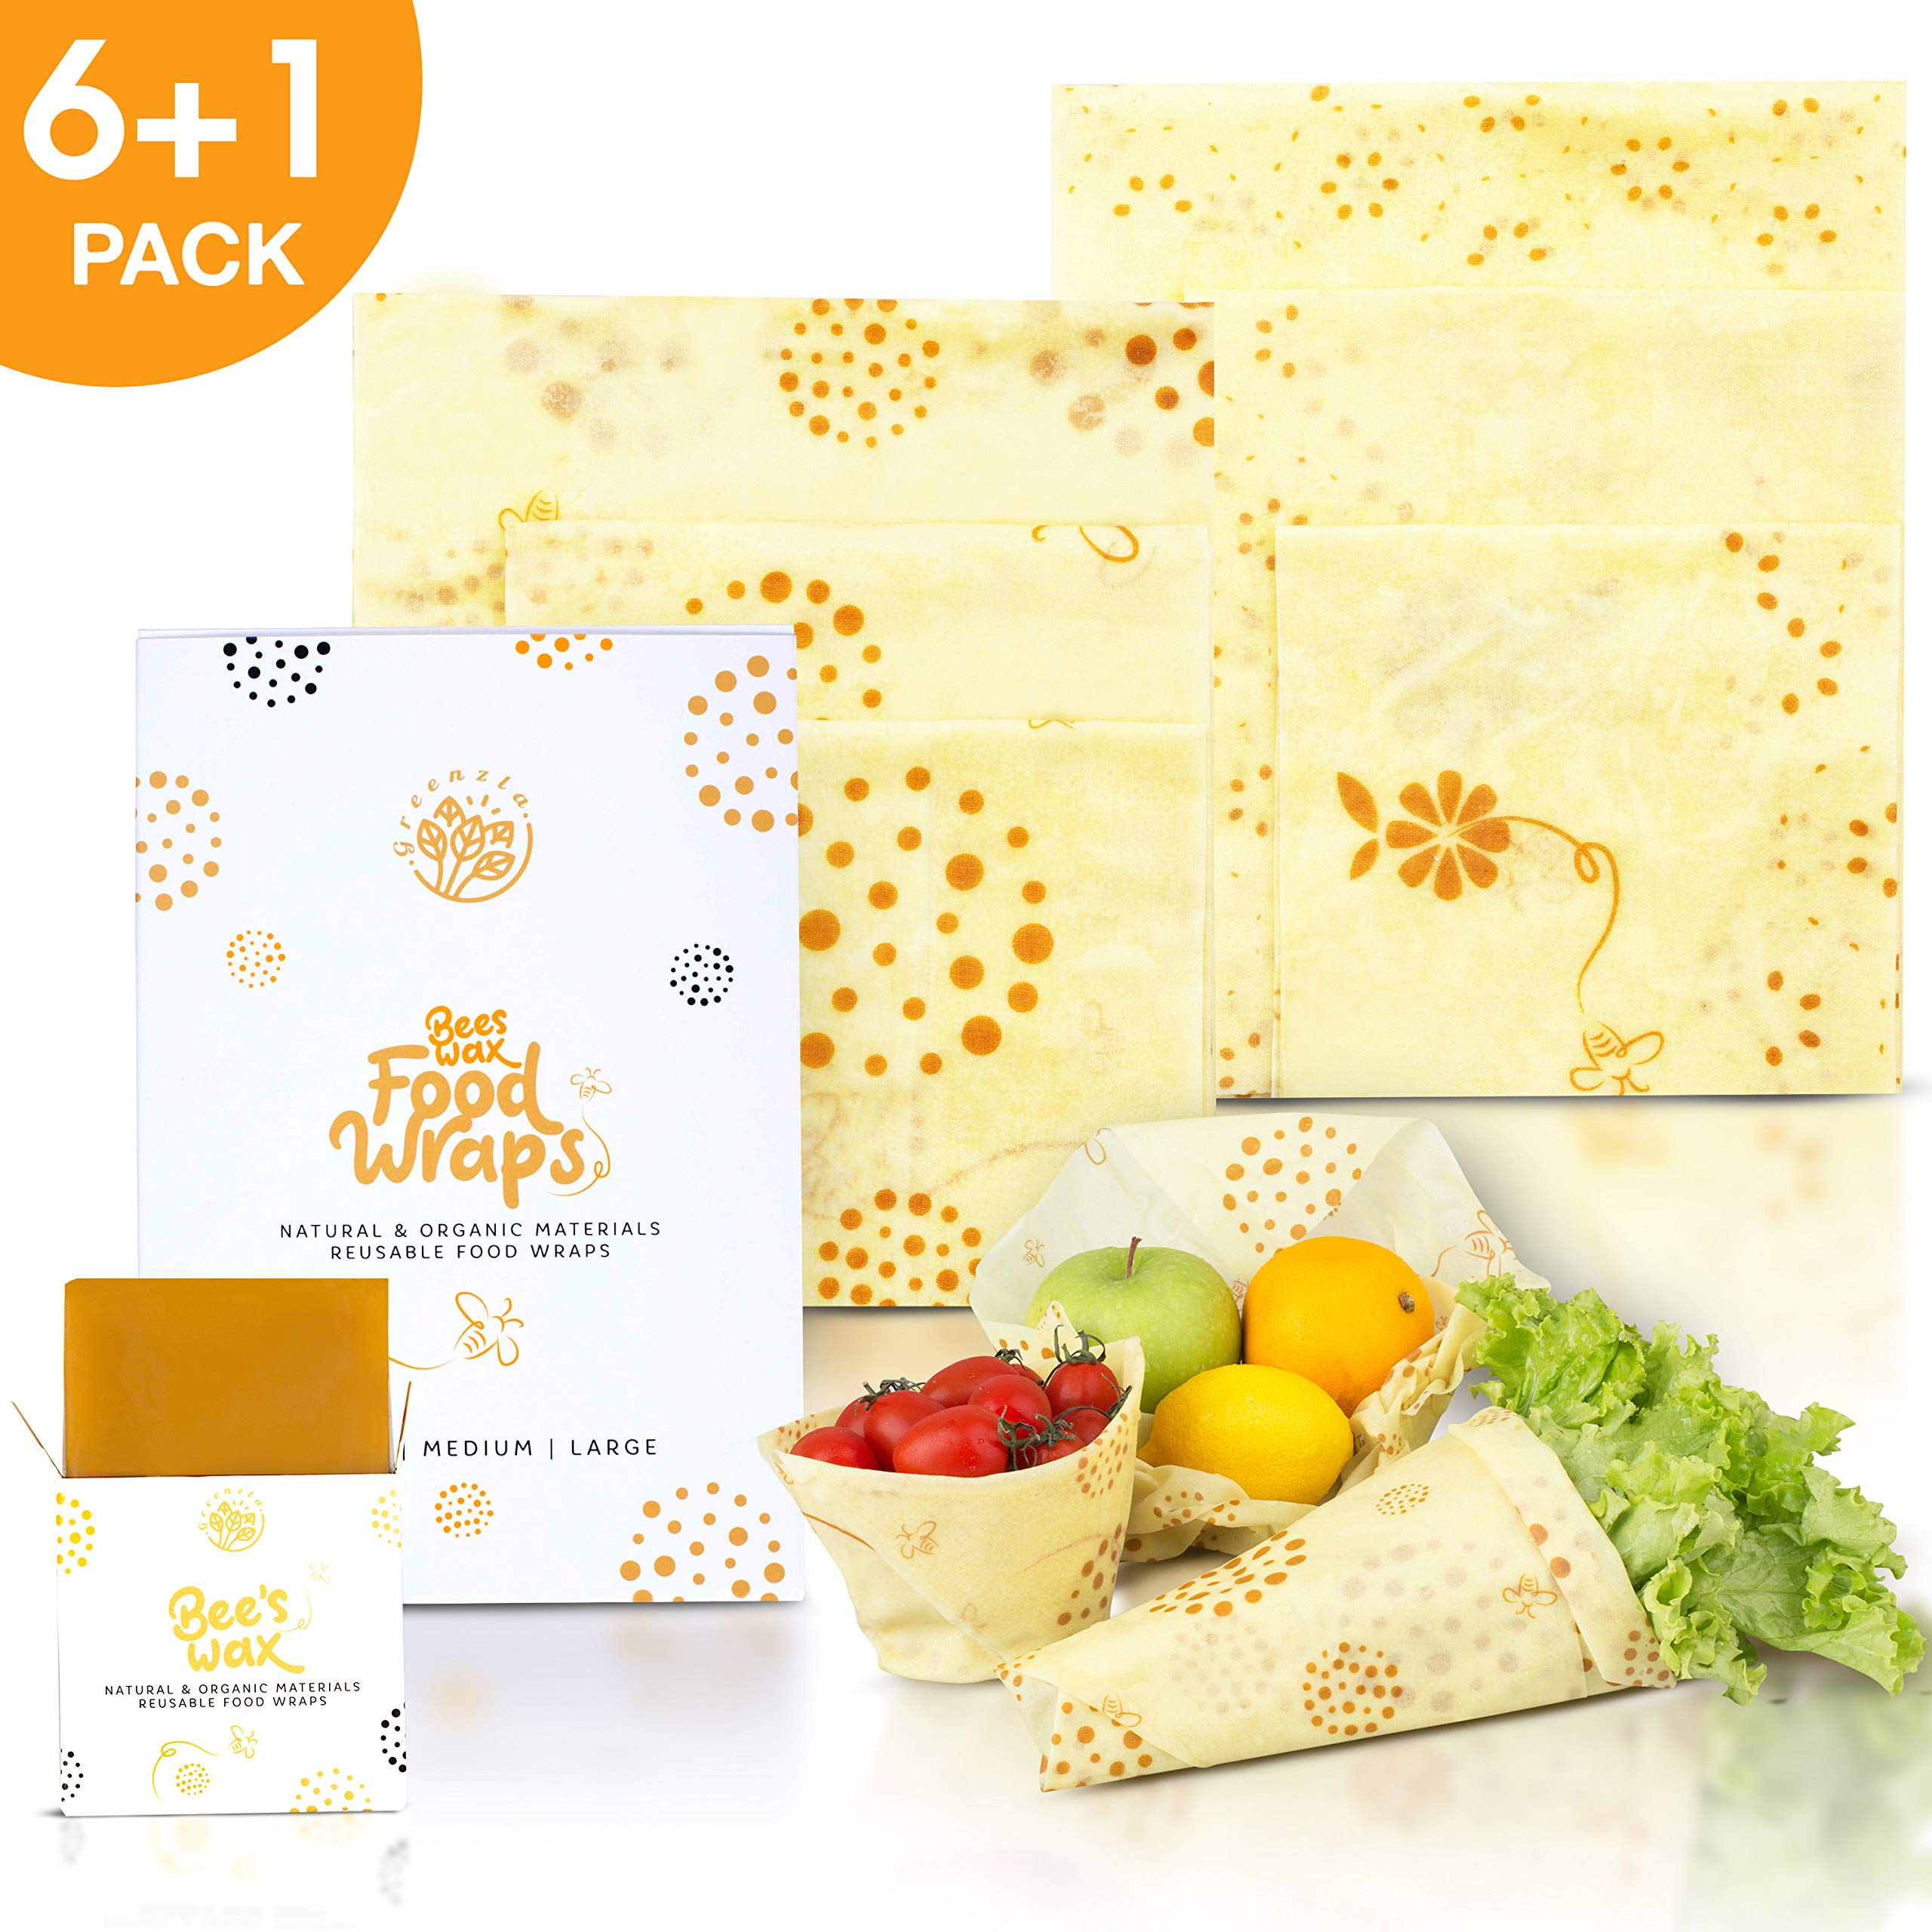 Greenzla Reusable Beeswax Food Wrap (Set Of 6 + Bonus Beeswax Bar) - Organic Cotton Wraps And Storage for Sandwich, Snack, Produce - Set of 2 Small, 2 Medium & 2 Large Eco Friendly Bee Wraps  Remove by Greenzla